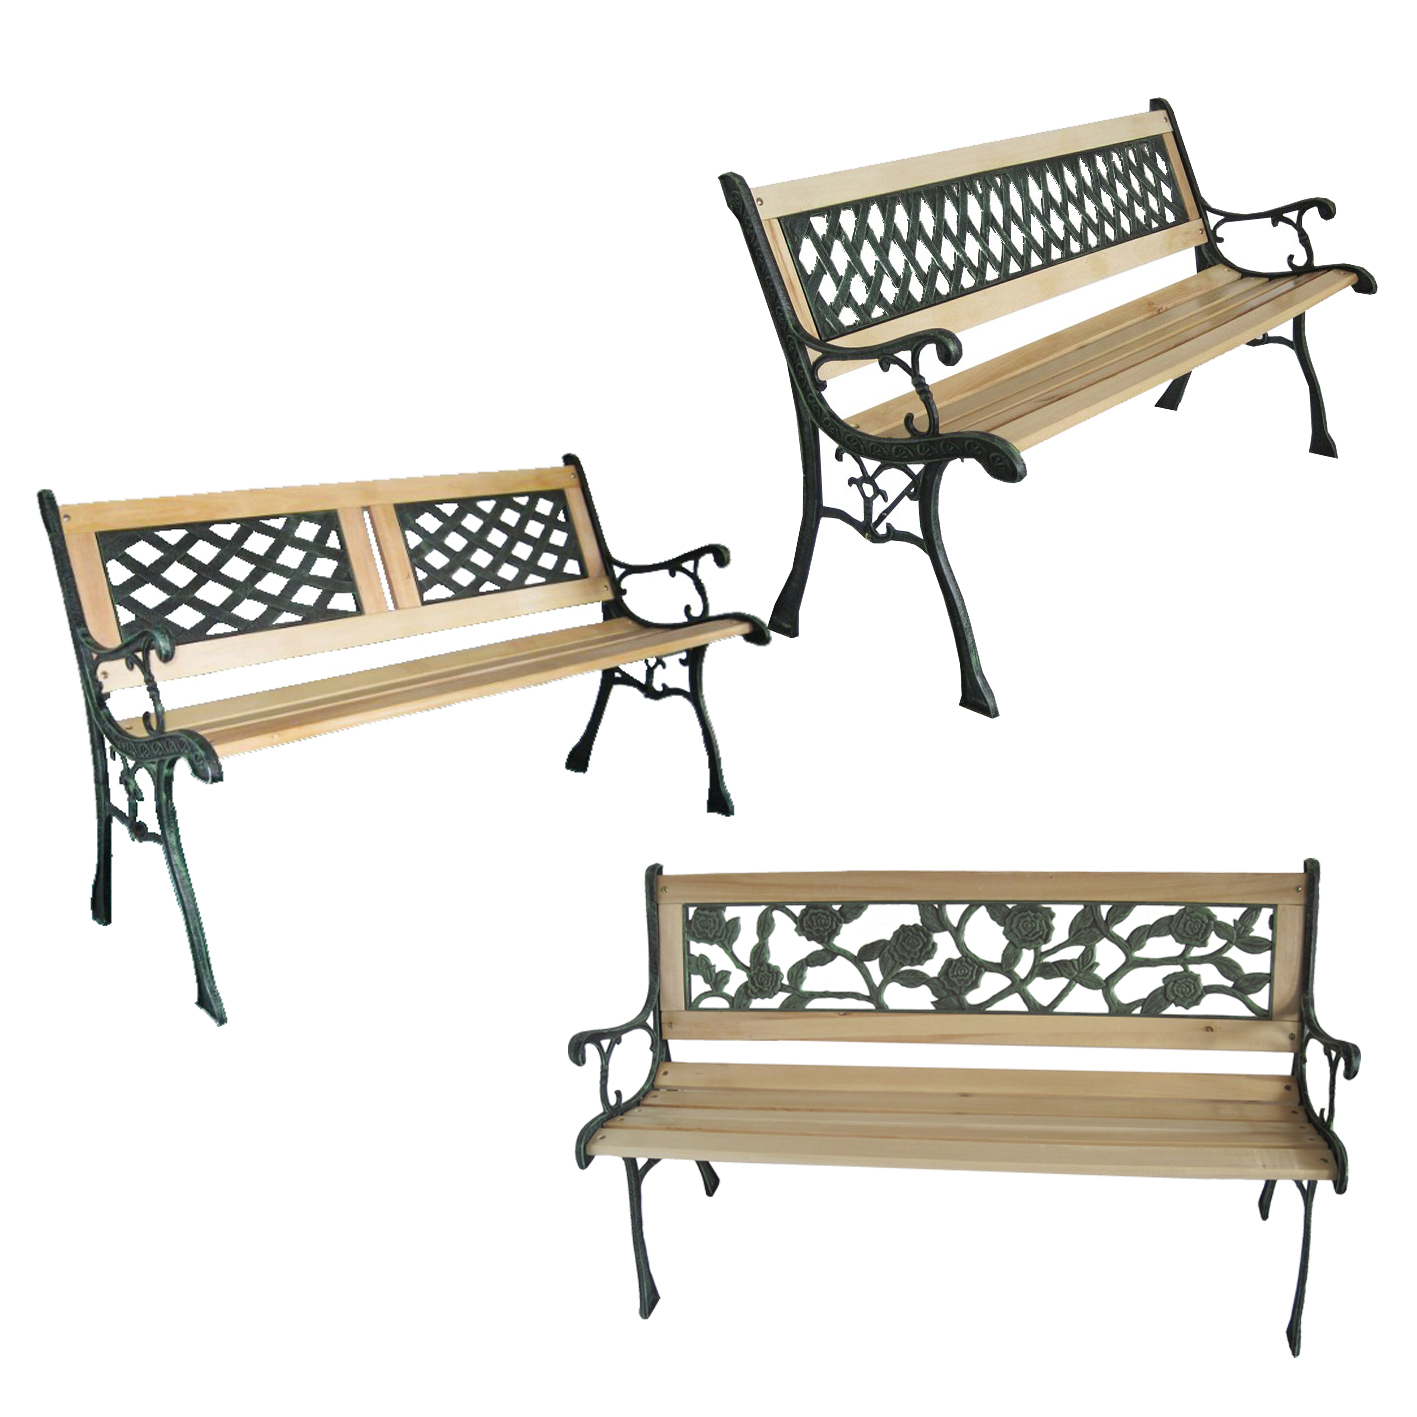 New 3 Seater Outdoor Wooden Garden Bench With Cast Iron Legs Park Seat Furniture Ebay